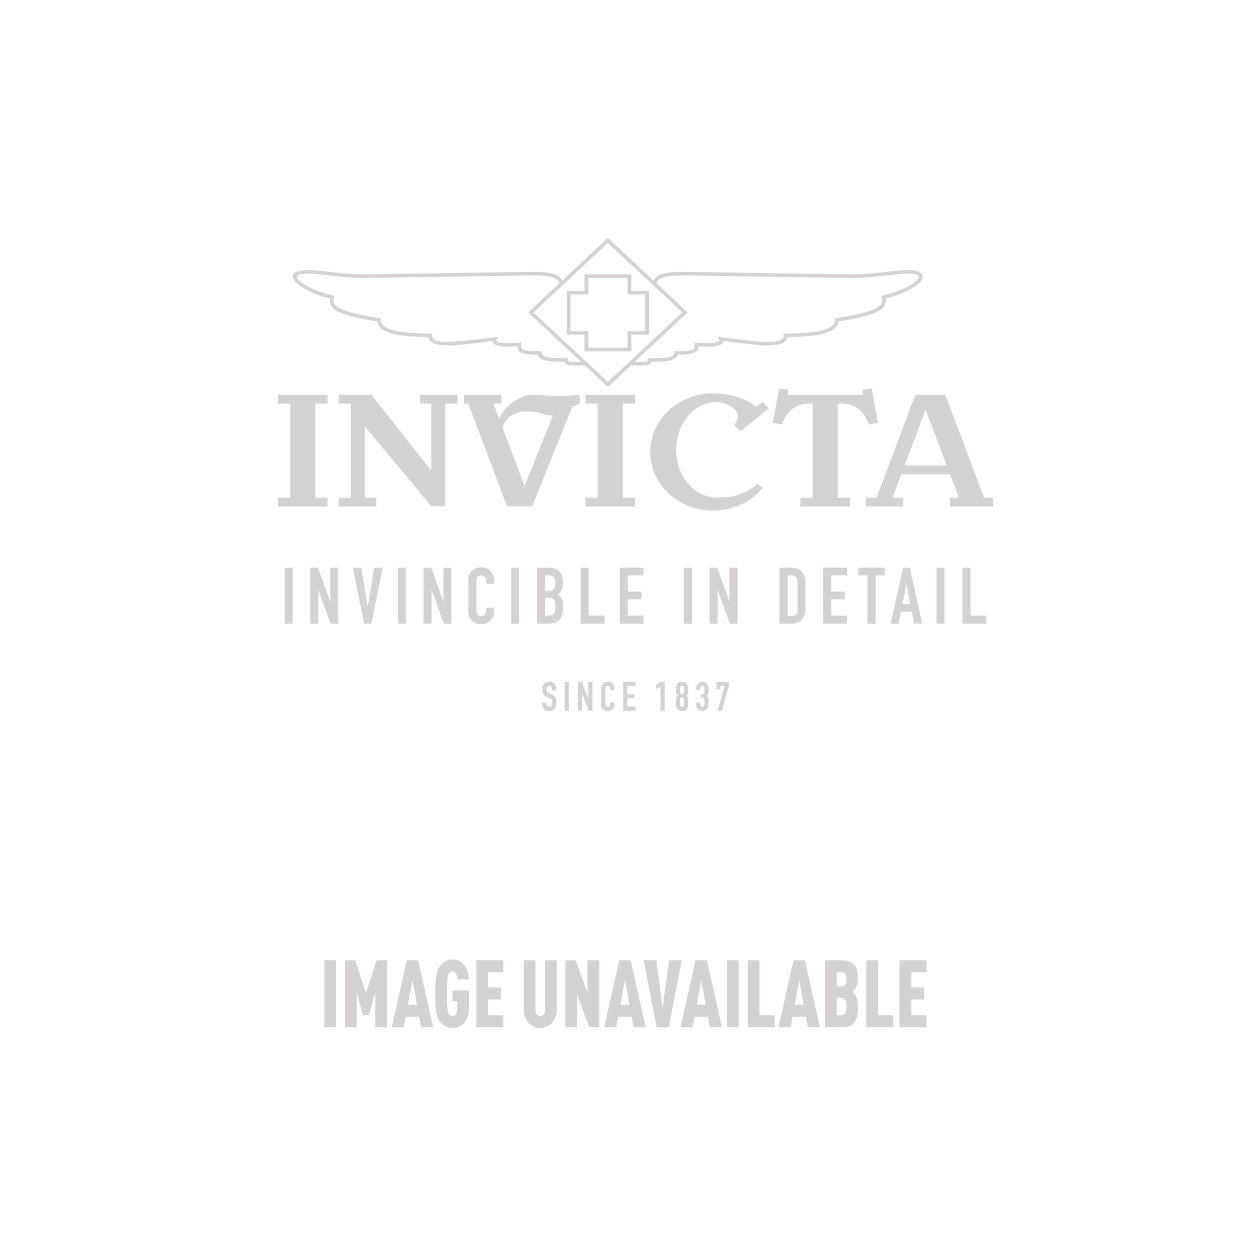 Invicta 21cm Men's Bracelets in Rhodium - Model J0005